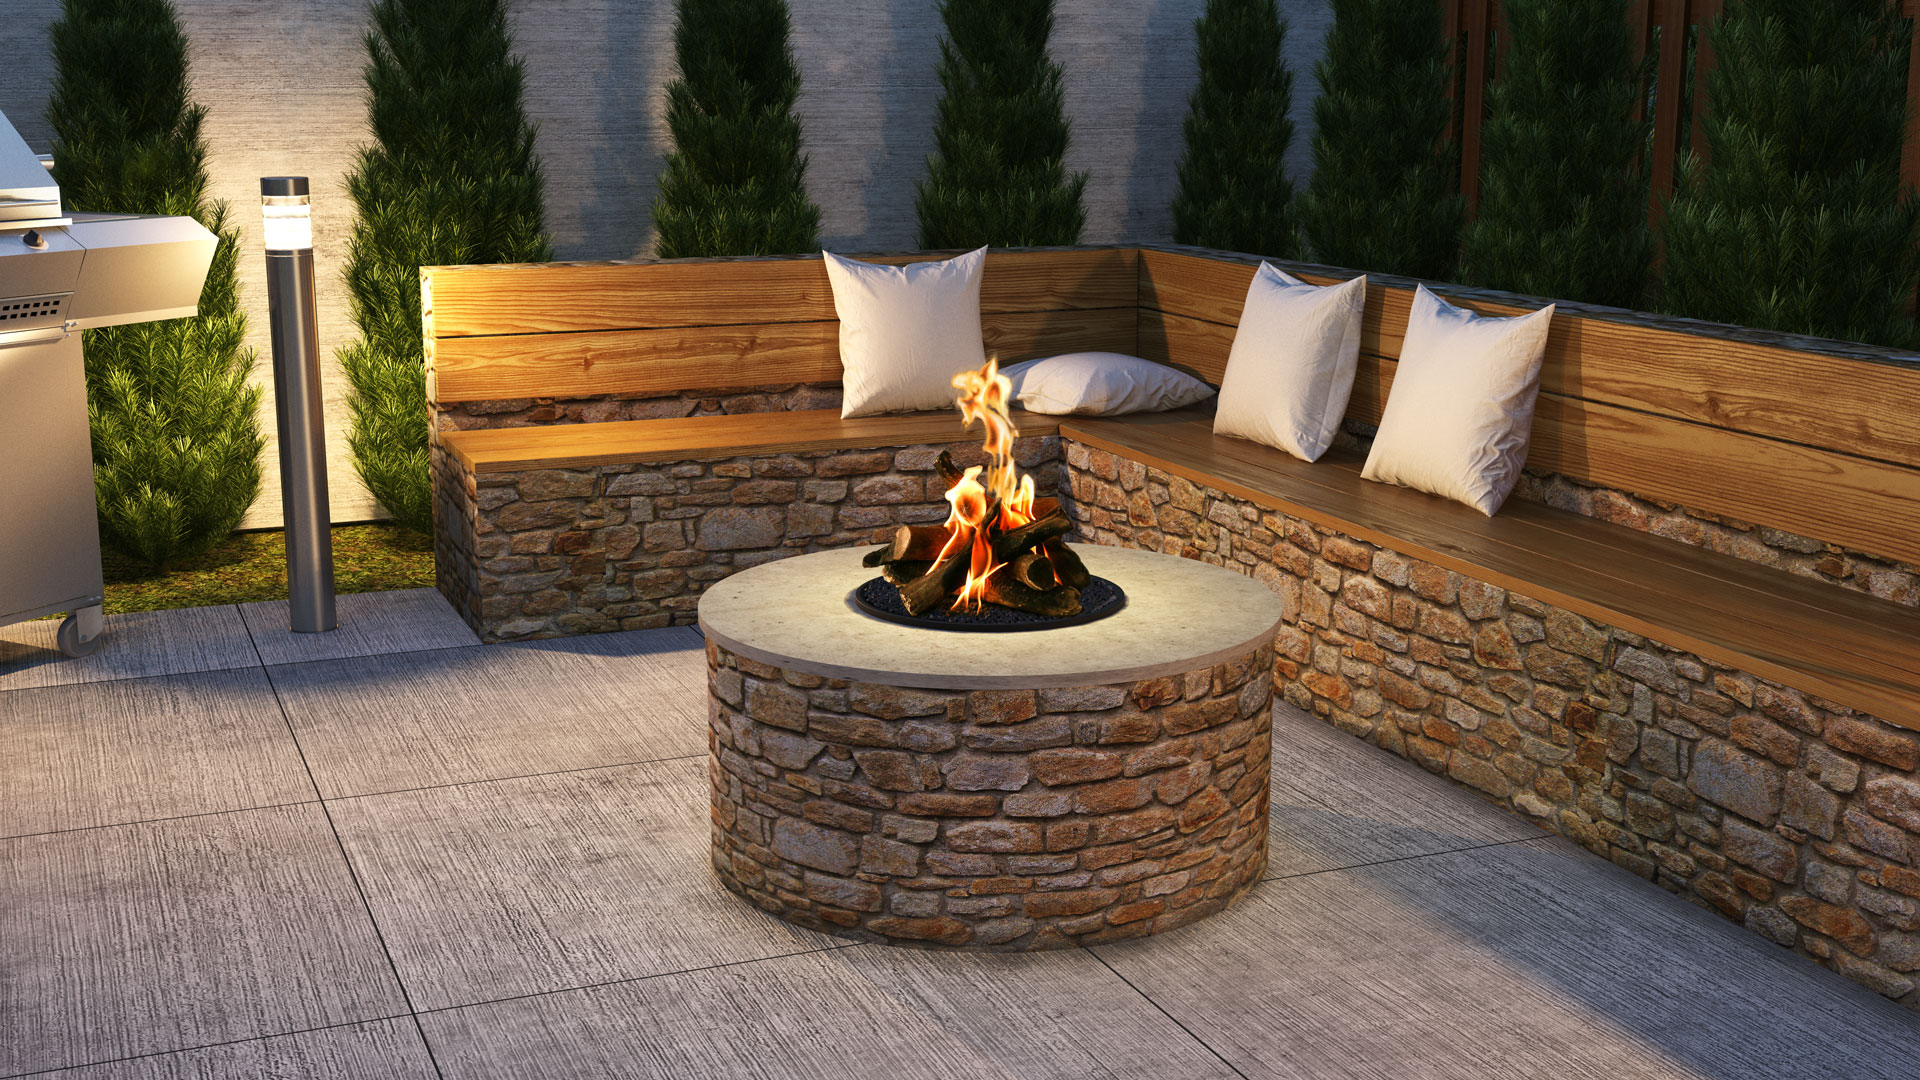 Chad-O-Chef Outdoor Firepit burner